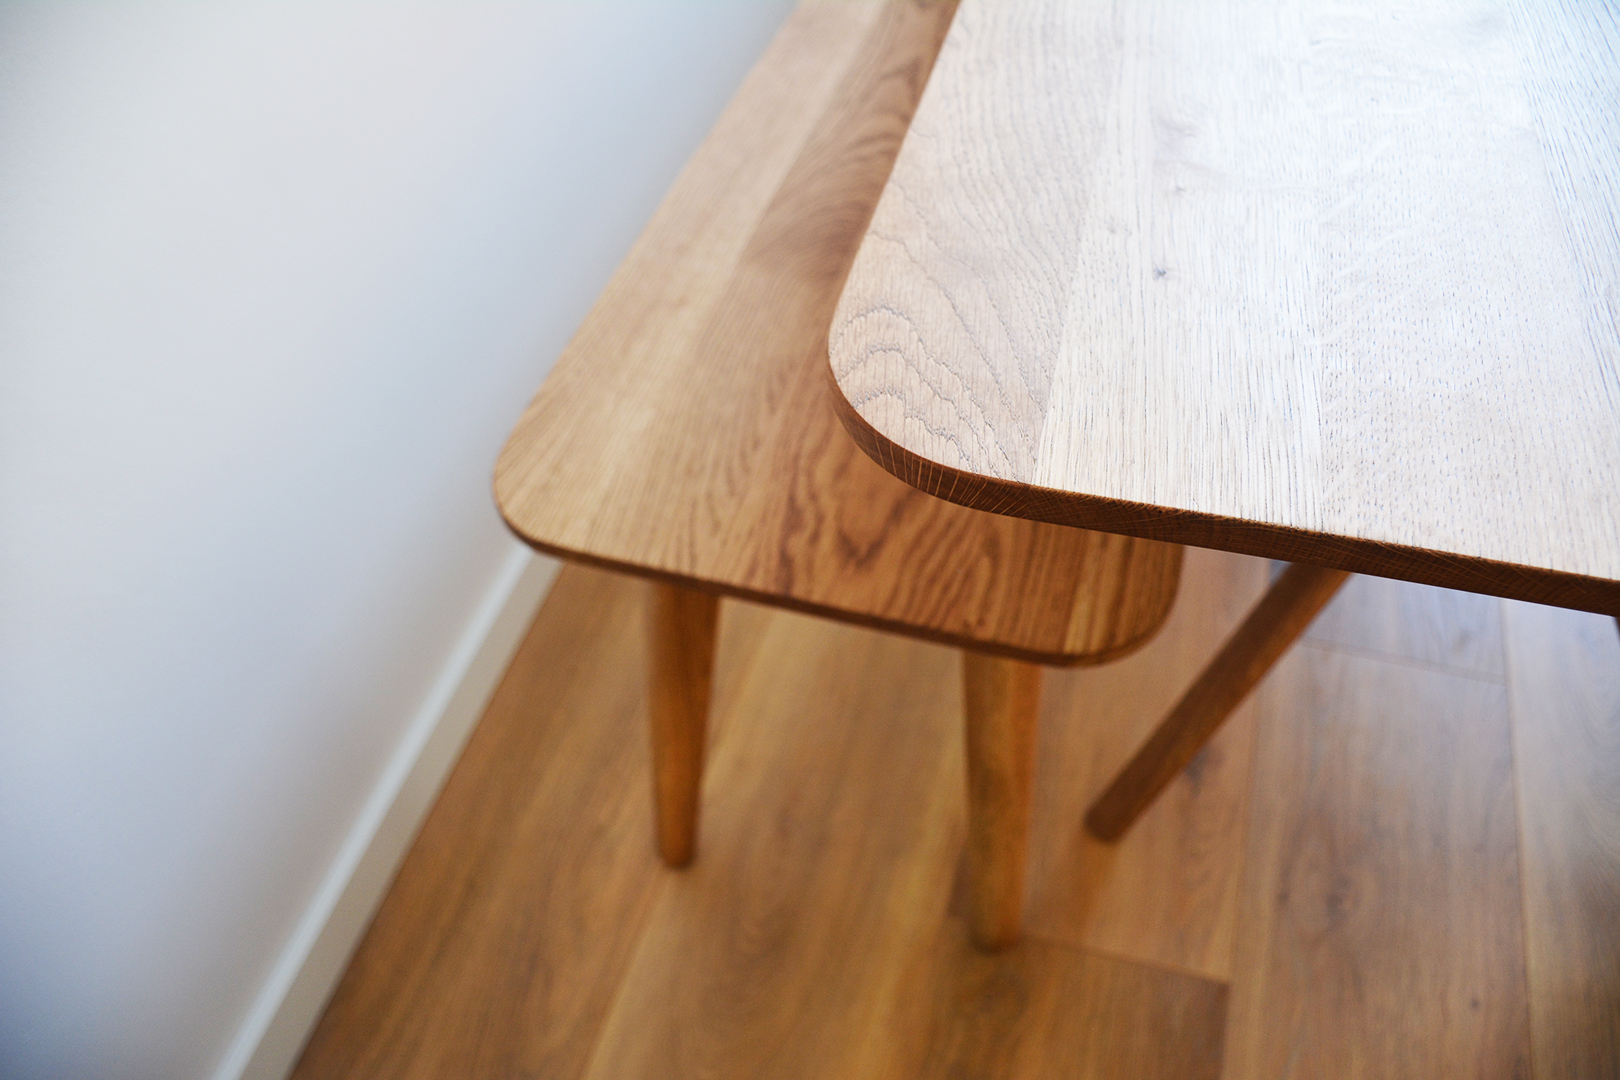 Detail massief eiken tafel met bank